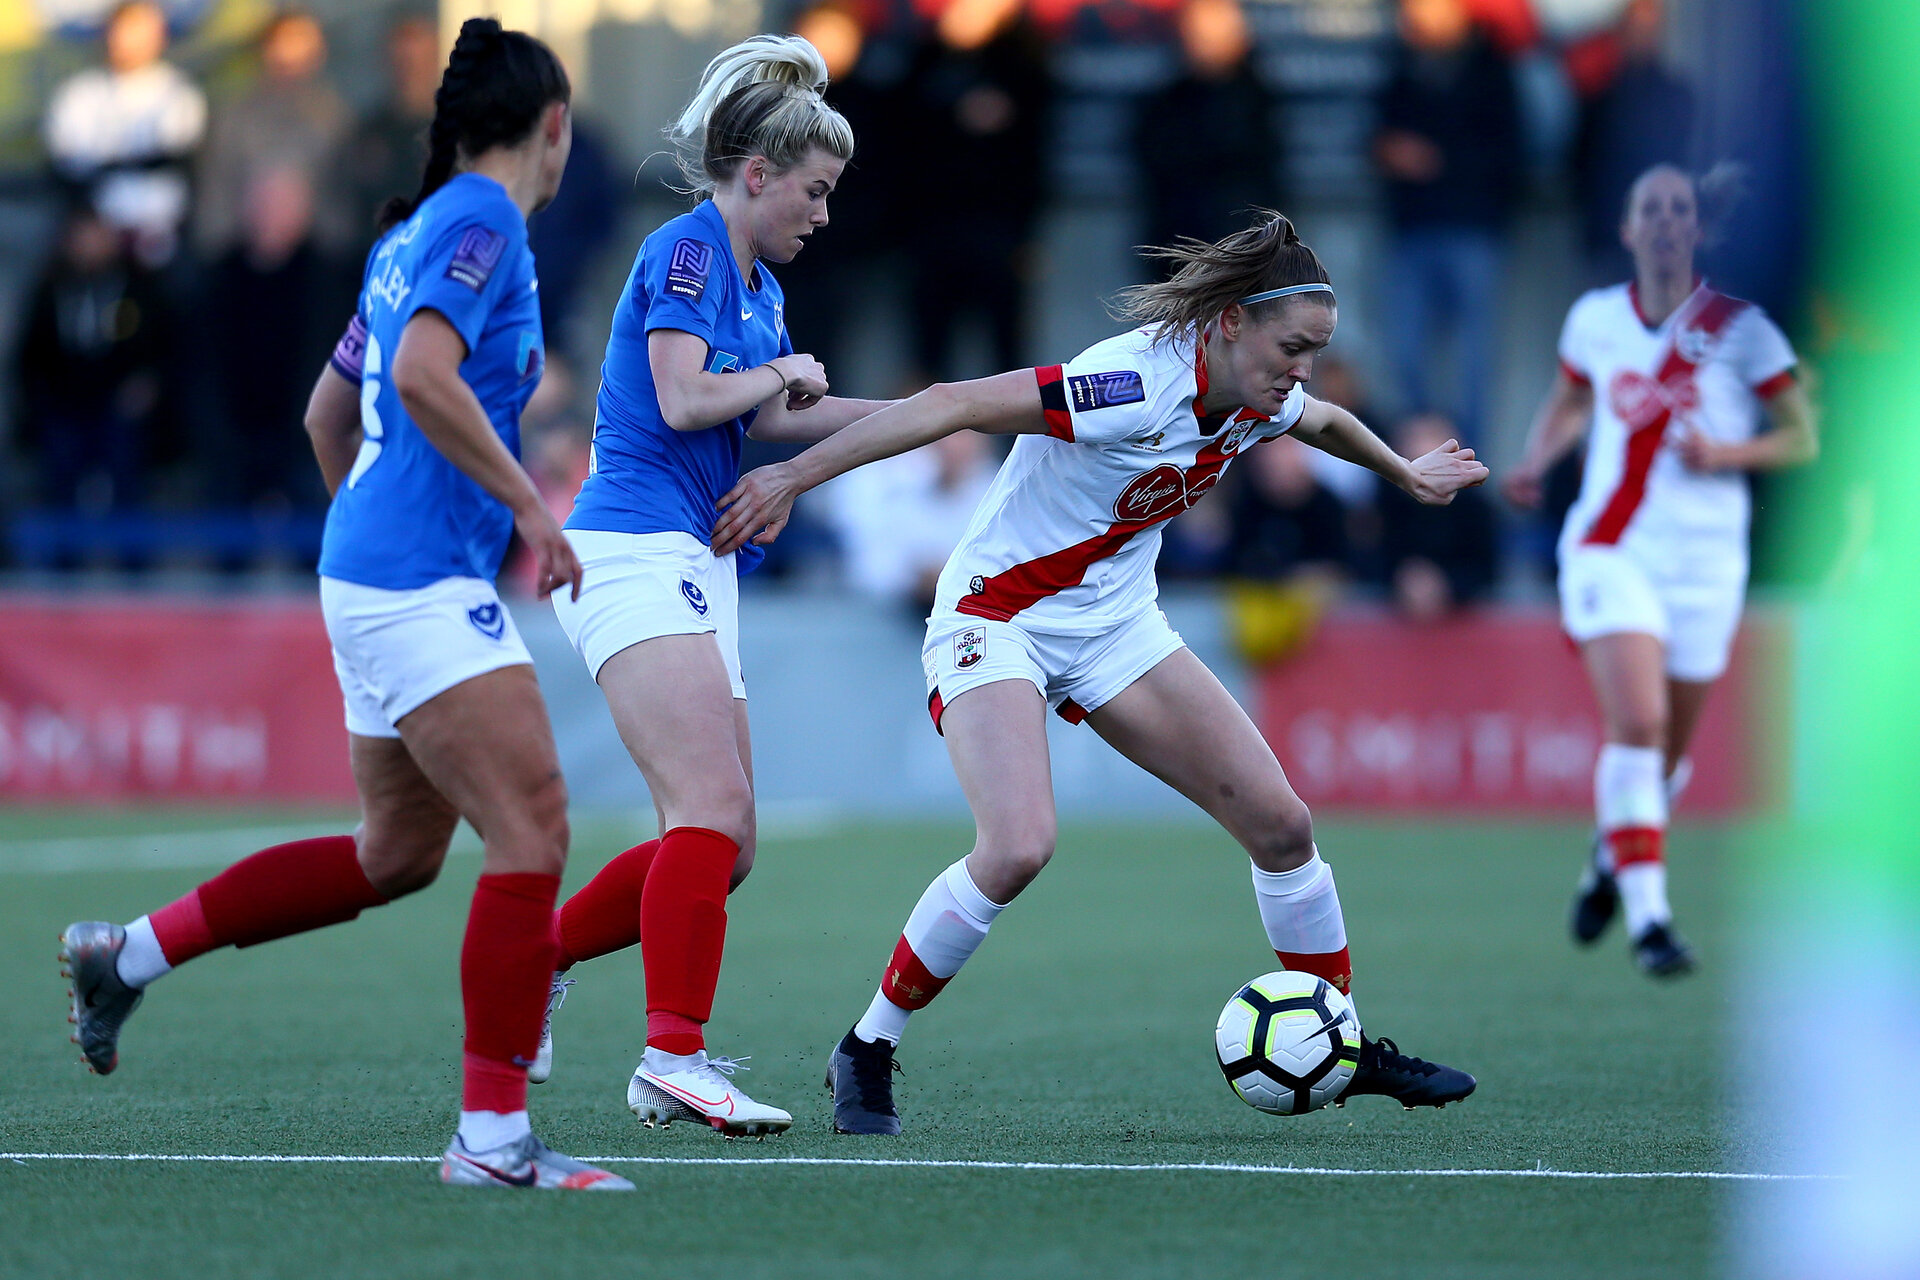 HAVANT, ENGLAND - MAY 19:  during the Hampshire FA Women's Senior Cup Final against Portsmouth Women and Southampton Women at Westleigh Park on May 19, 2021 in Havant, England. (Photo by Isabelle Field/Southampton FC via Getty Images)